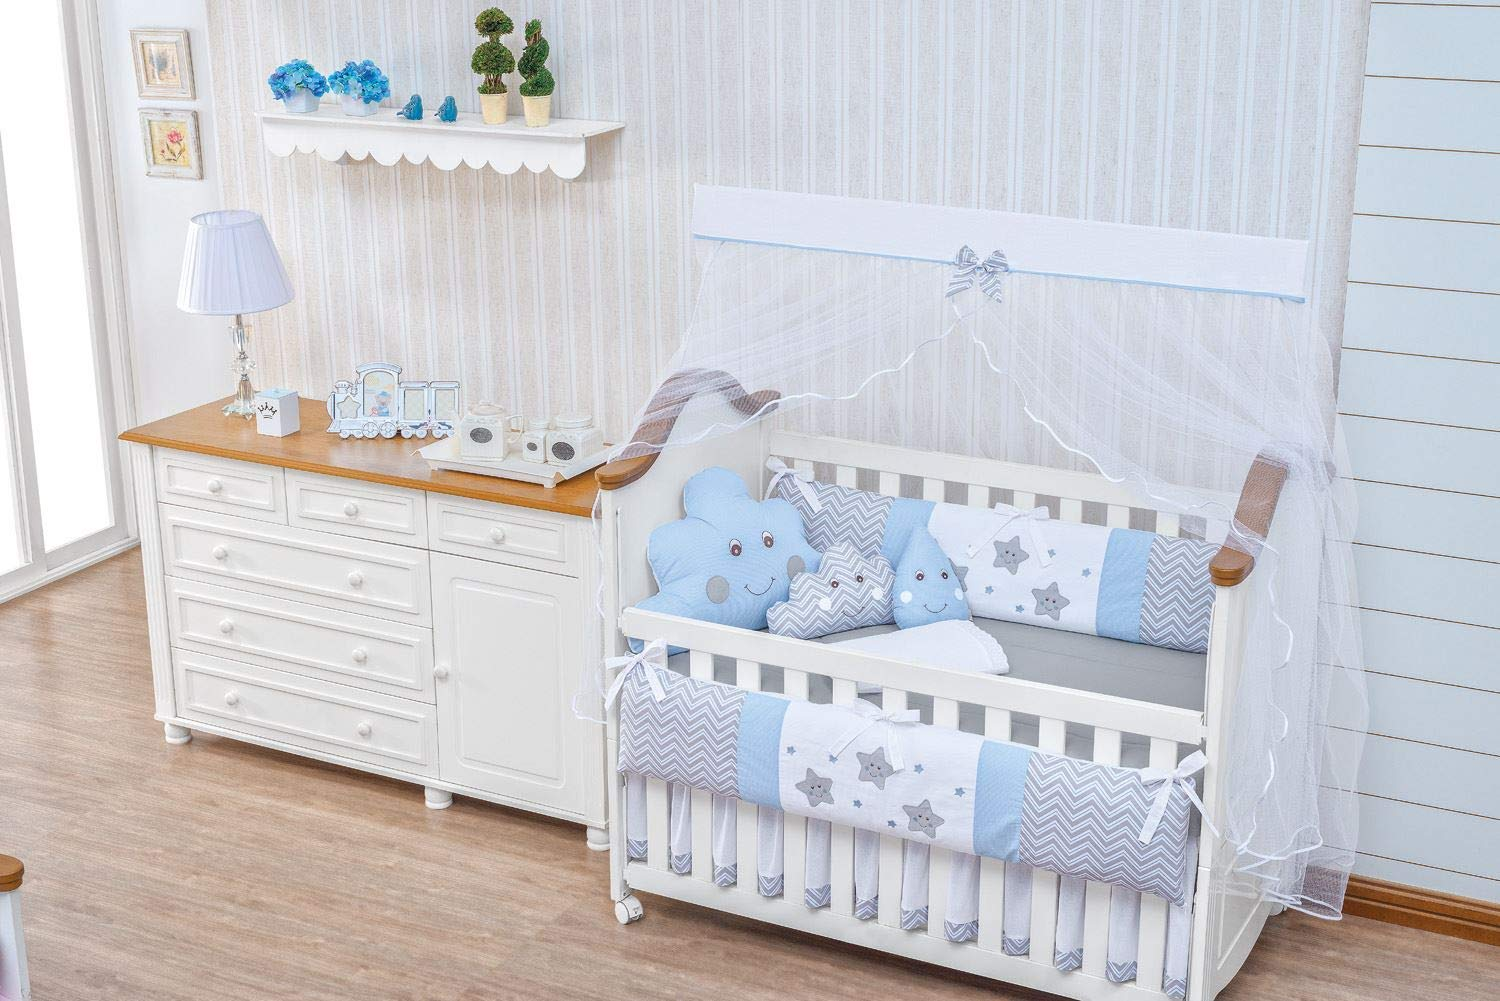 Little Happy Cloud Star Raindrop Theme Blue Chevron Baby Boy 10 pcs Nursery Bedding Set with Cushions Cloud Raindrop + Sheet Set + Bumpers + Crib Skirt